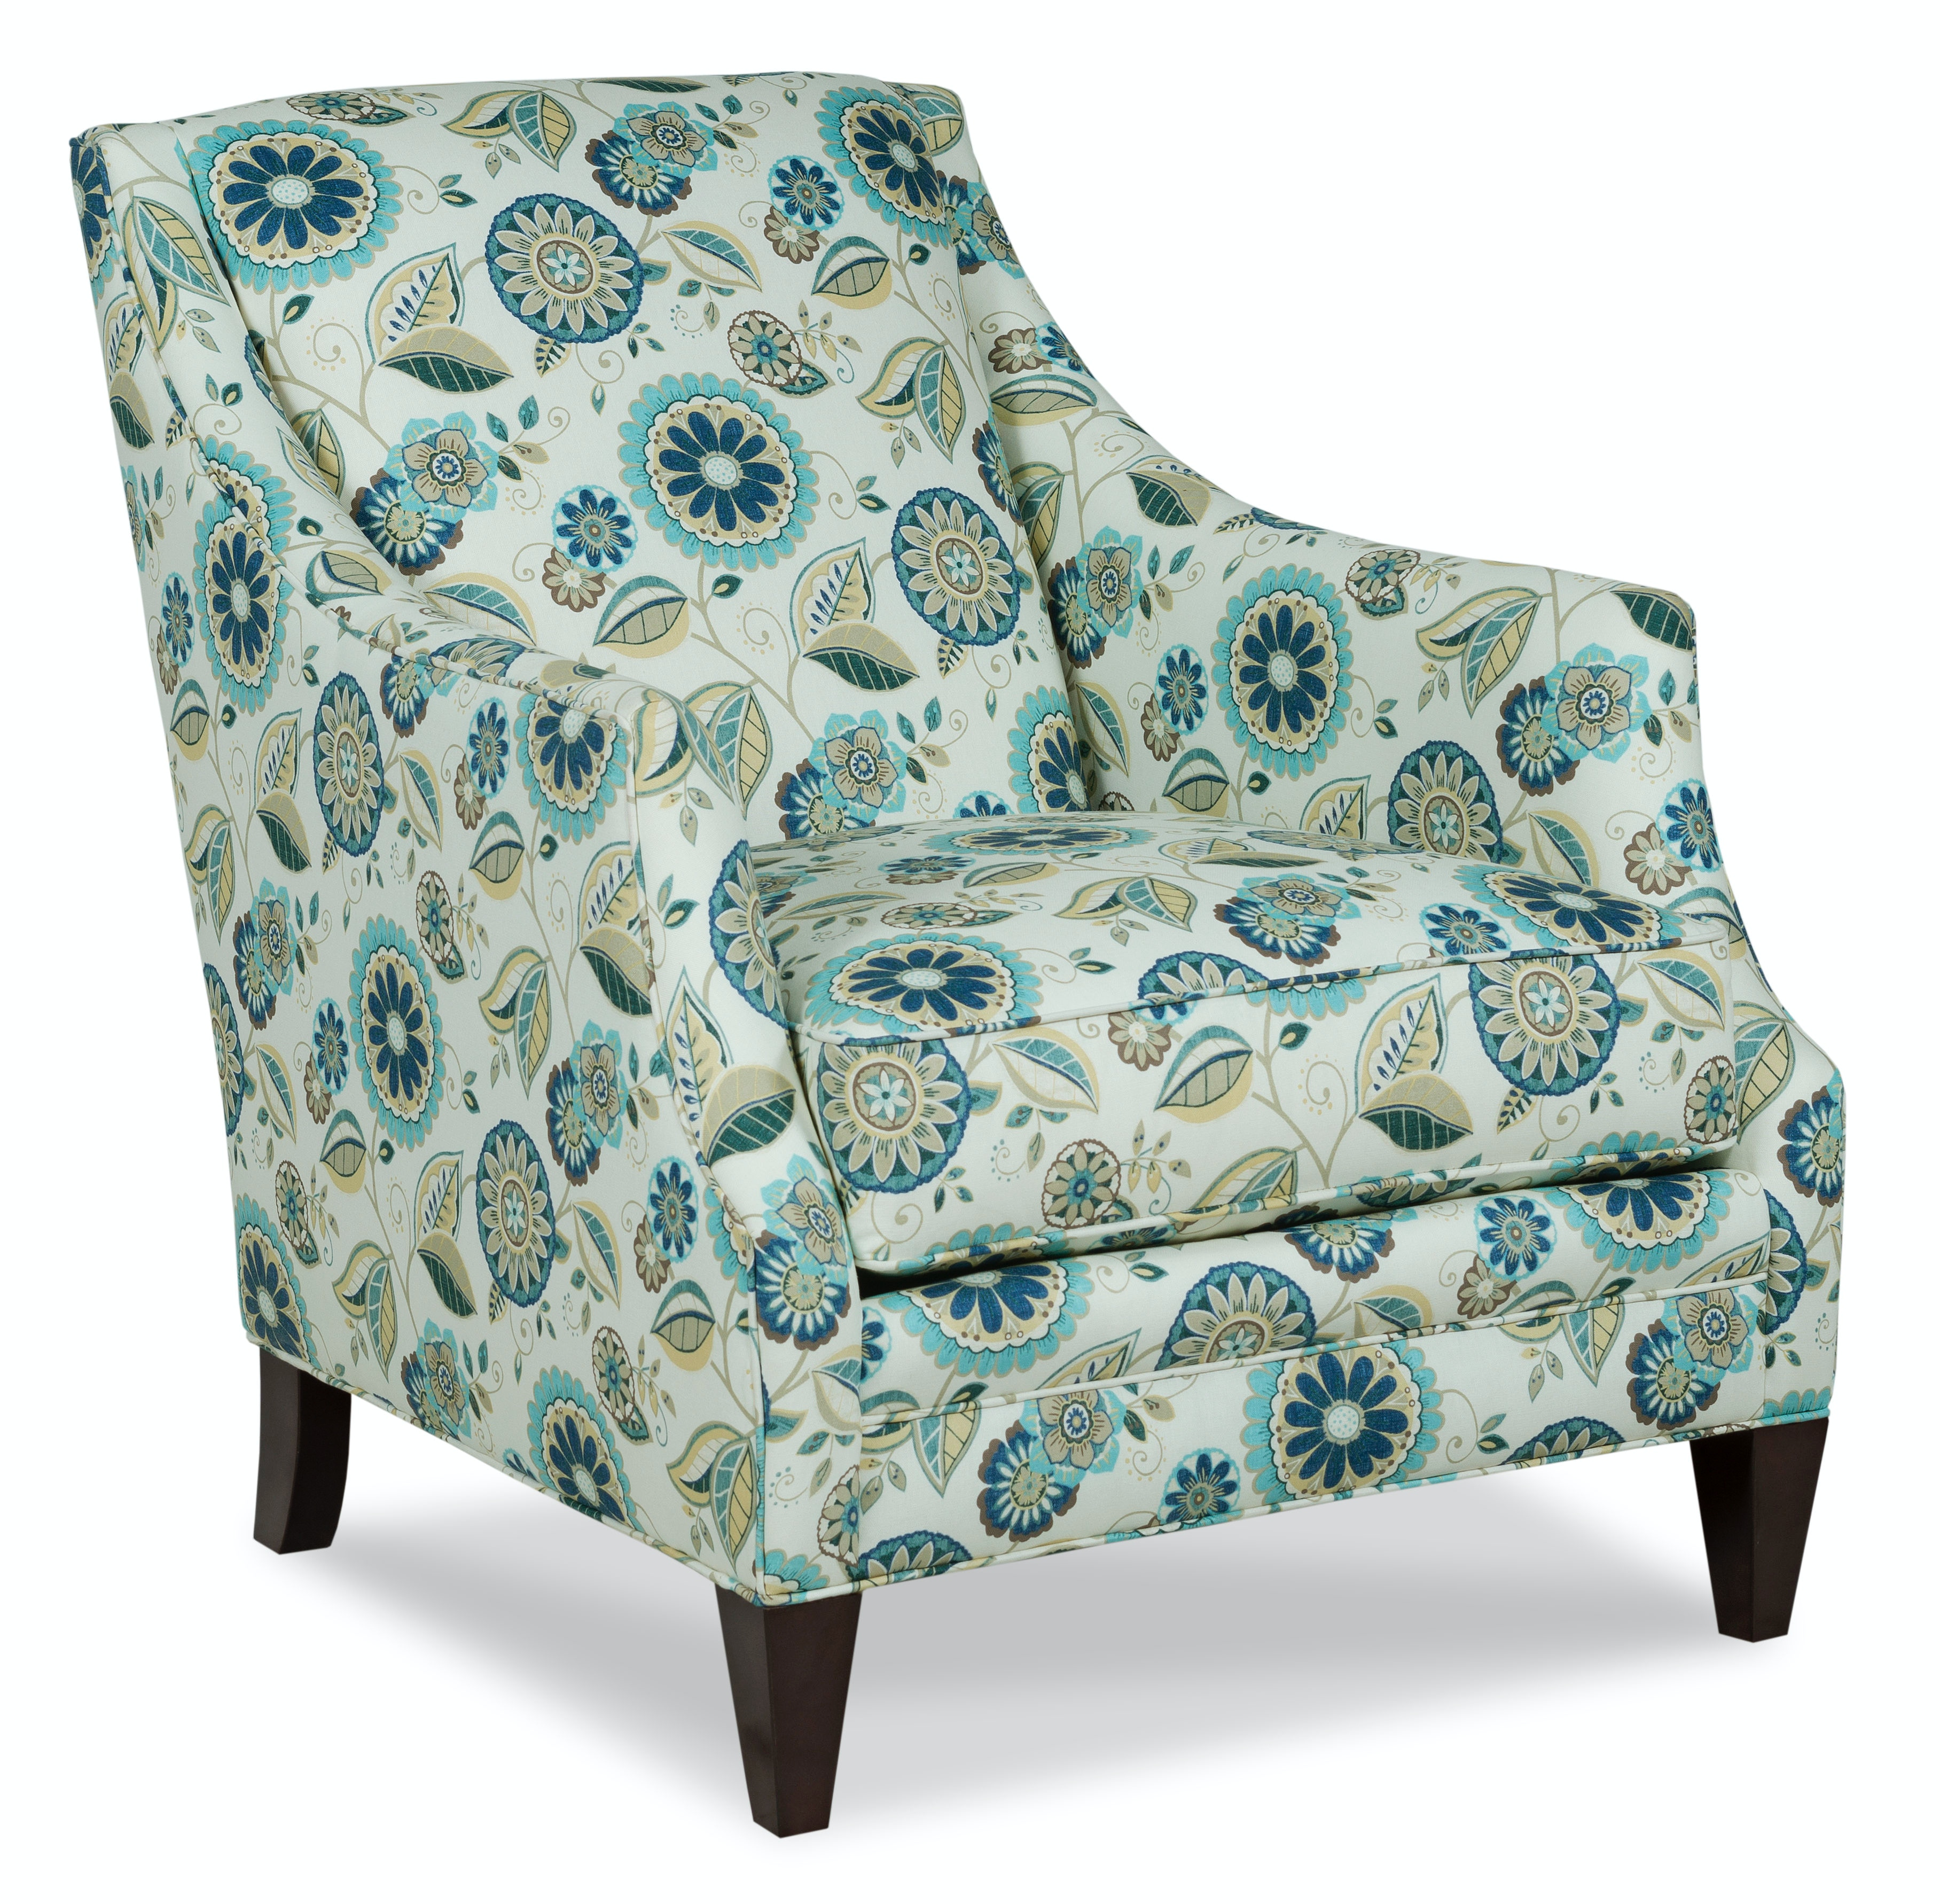 Incroyable Fairfield Chair Company Kirby Lounge Chair 1166 01